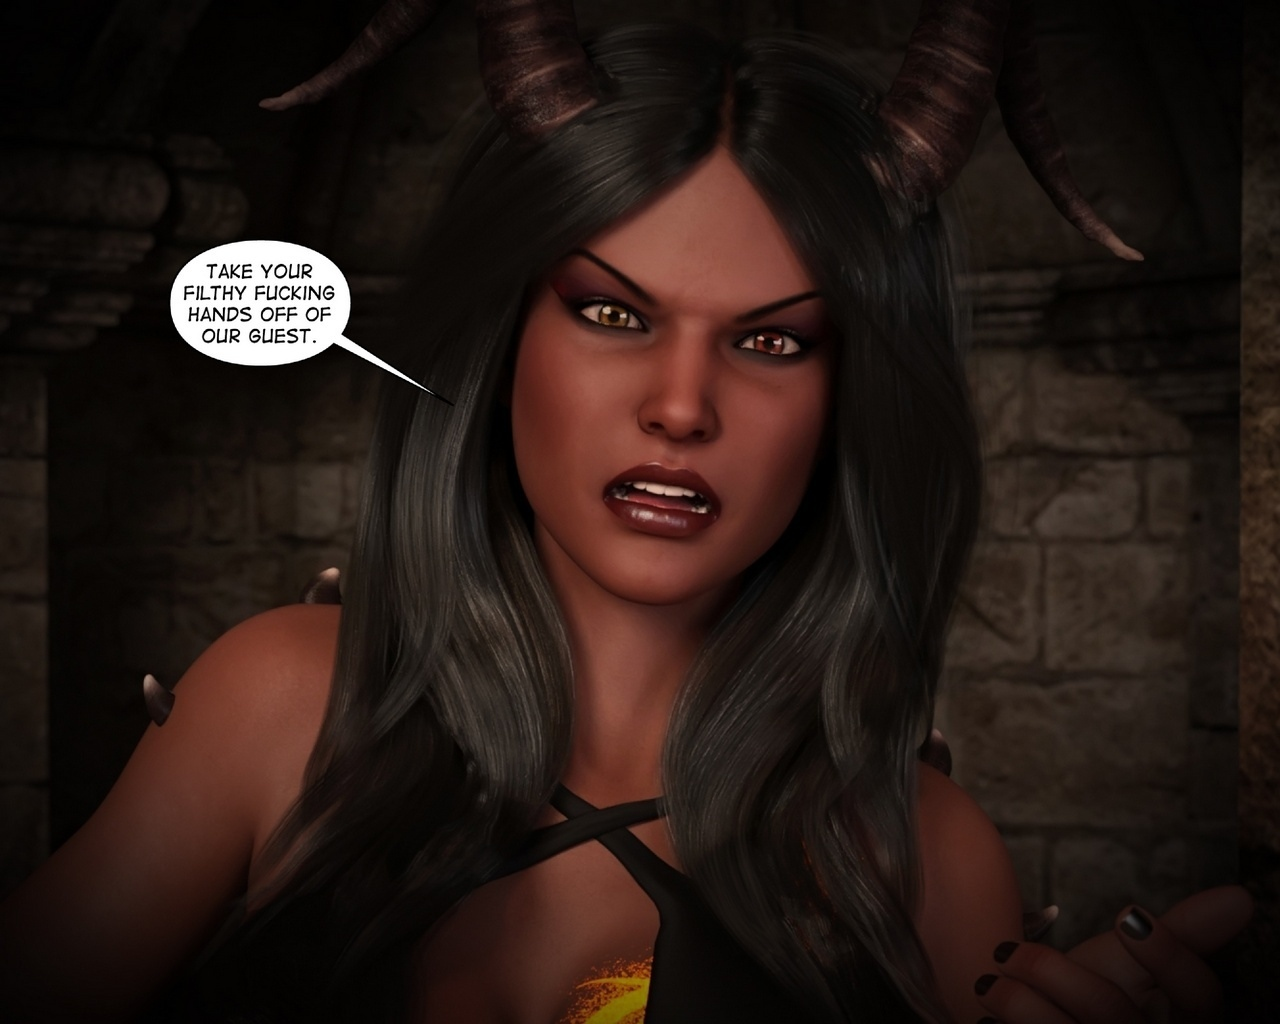 Helen-Black-Vampire-Hunter-To-Hell-1 26 free sex comic